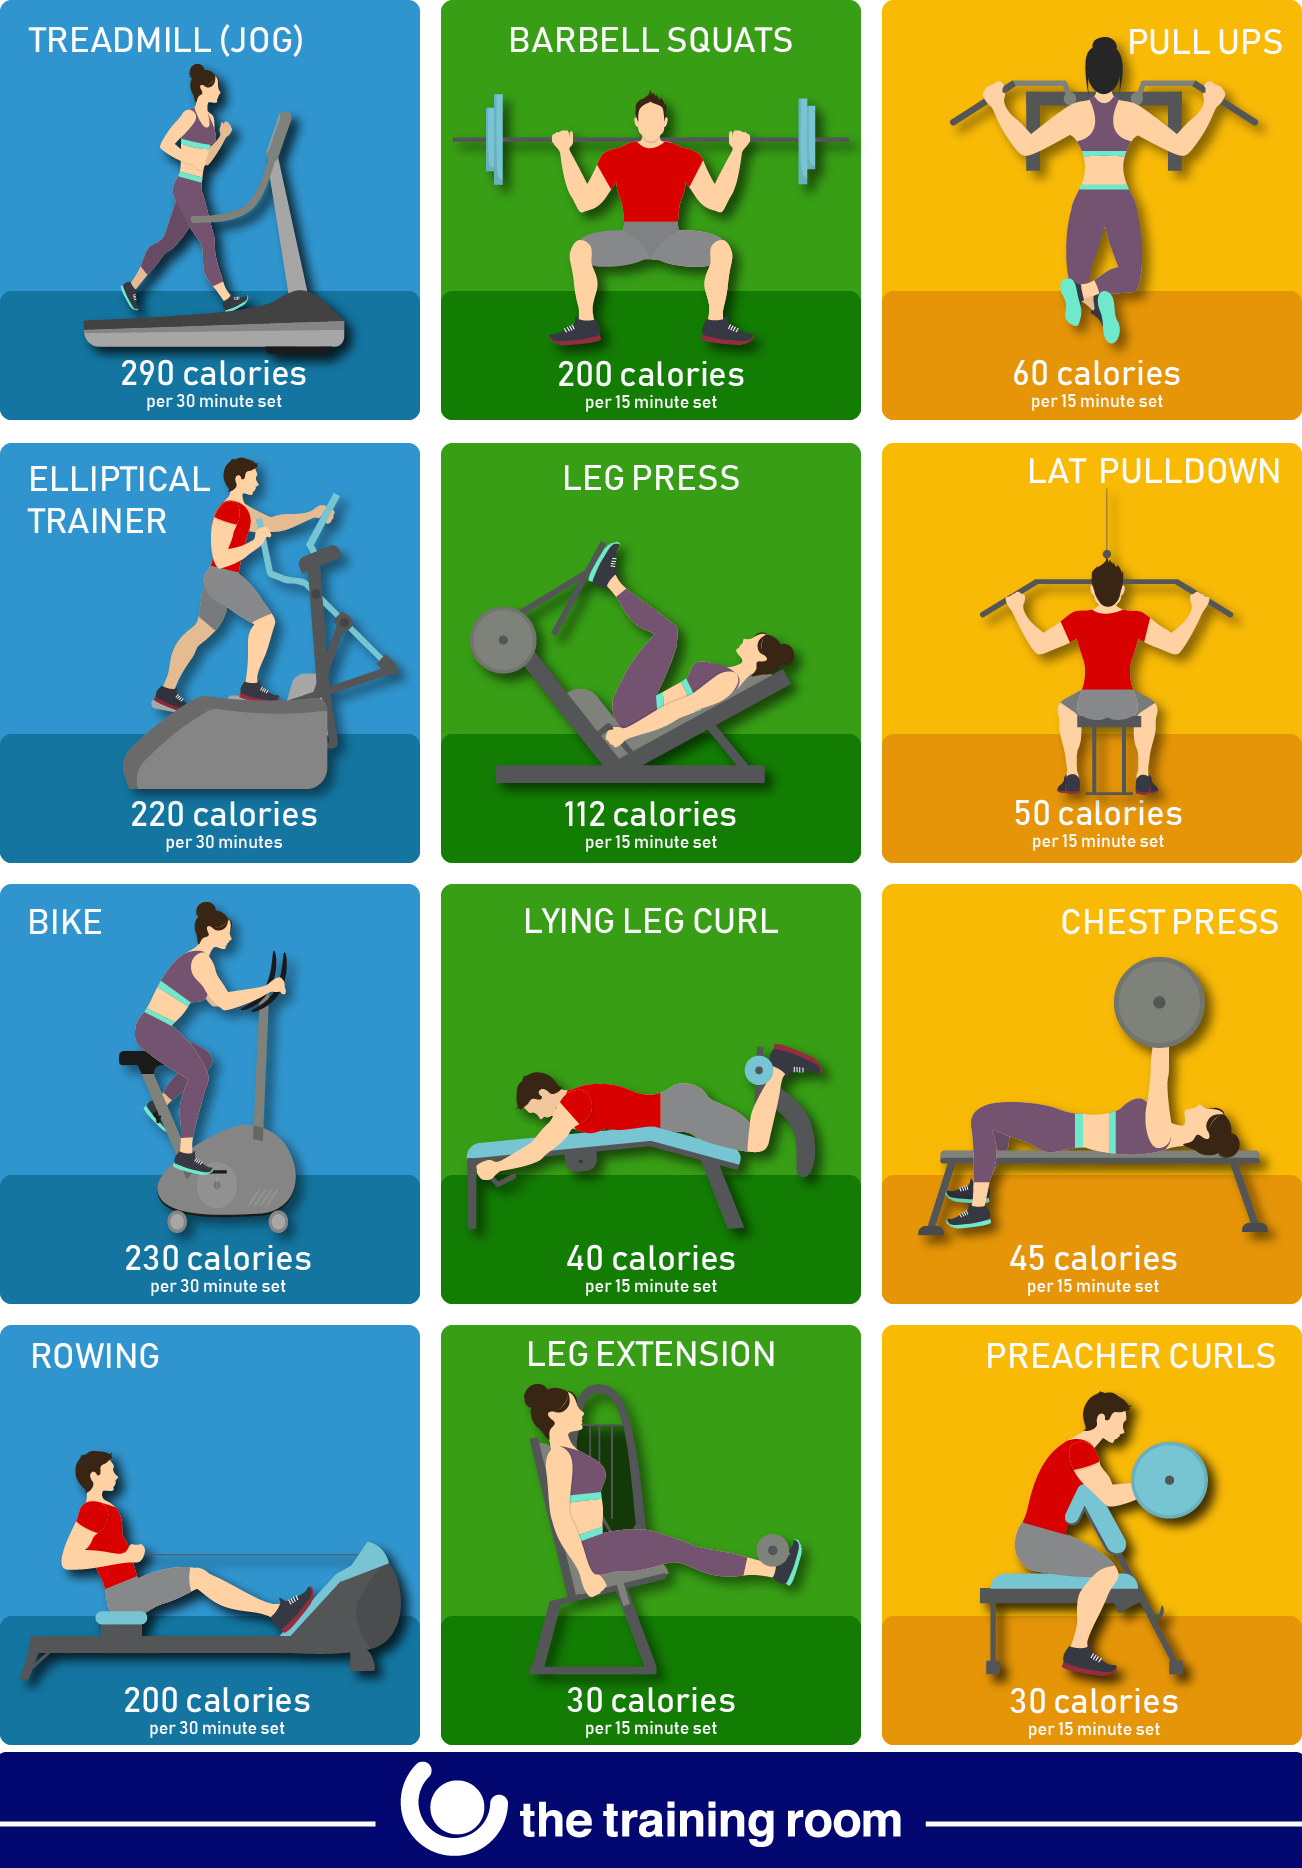 your-next-workout-in-calories-V2-1-01.png